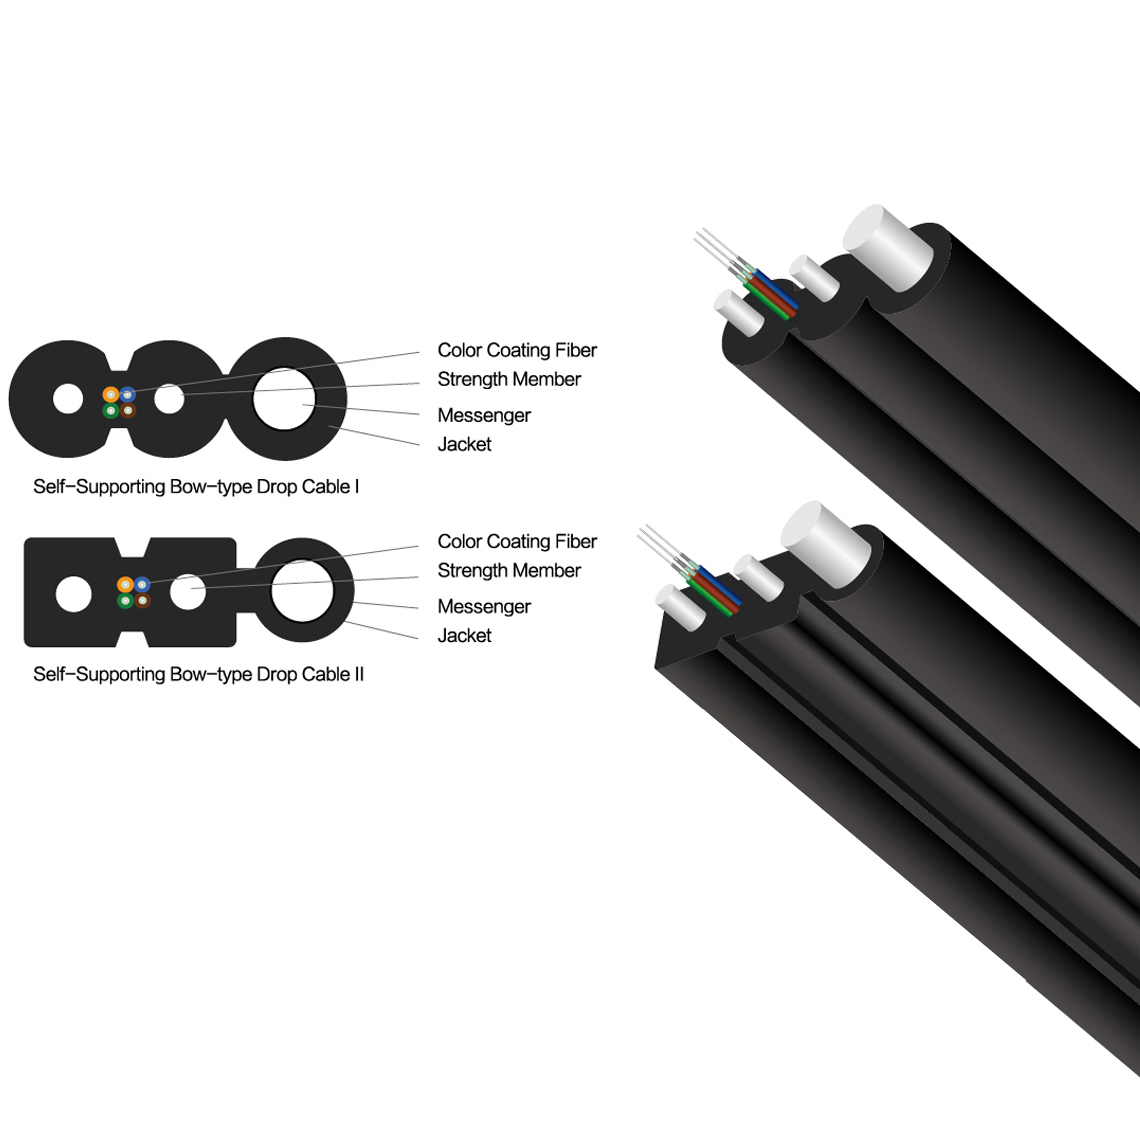 2F Self-Supporting Bow-Type Drop Cable